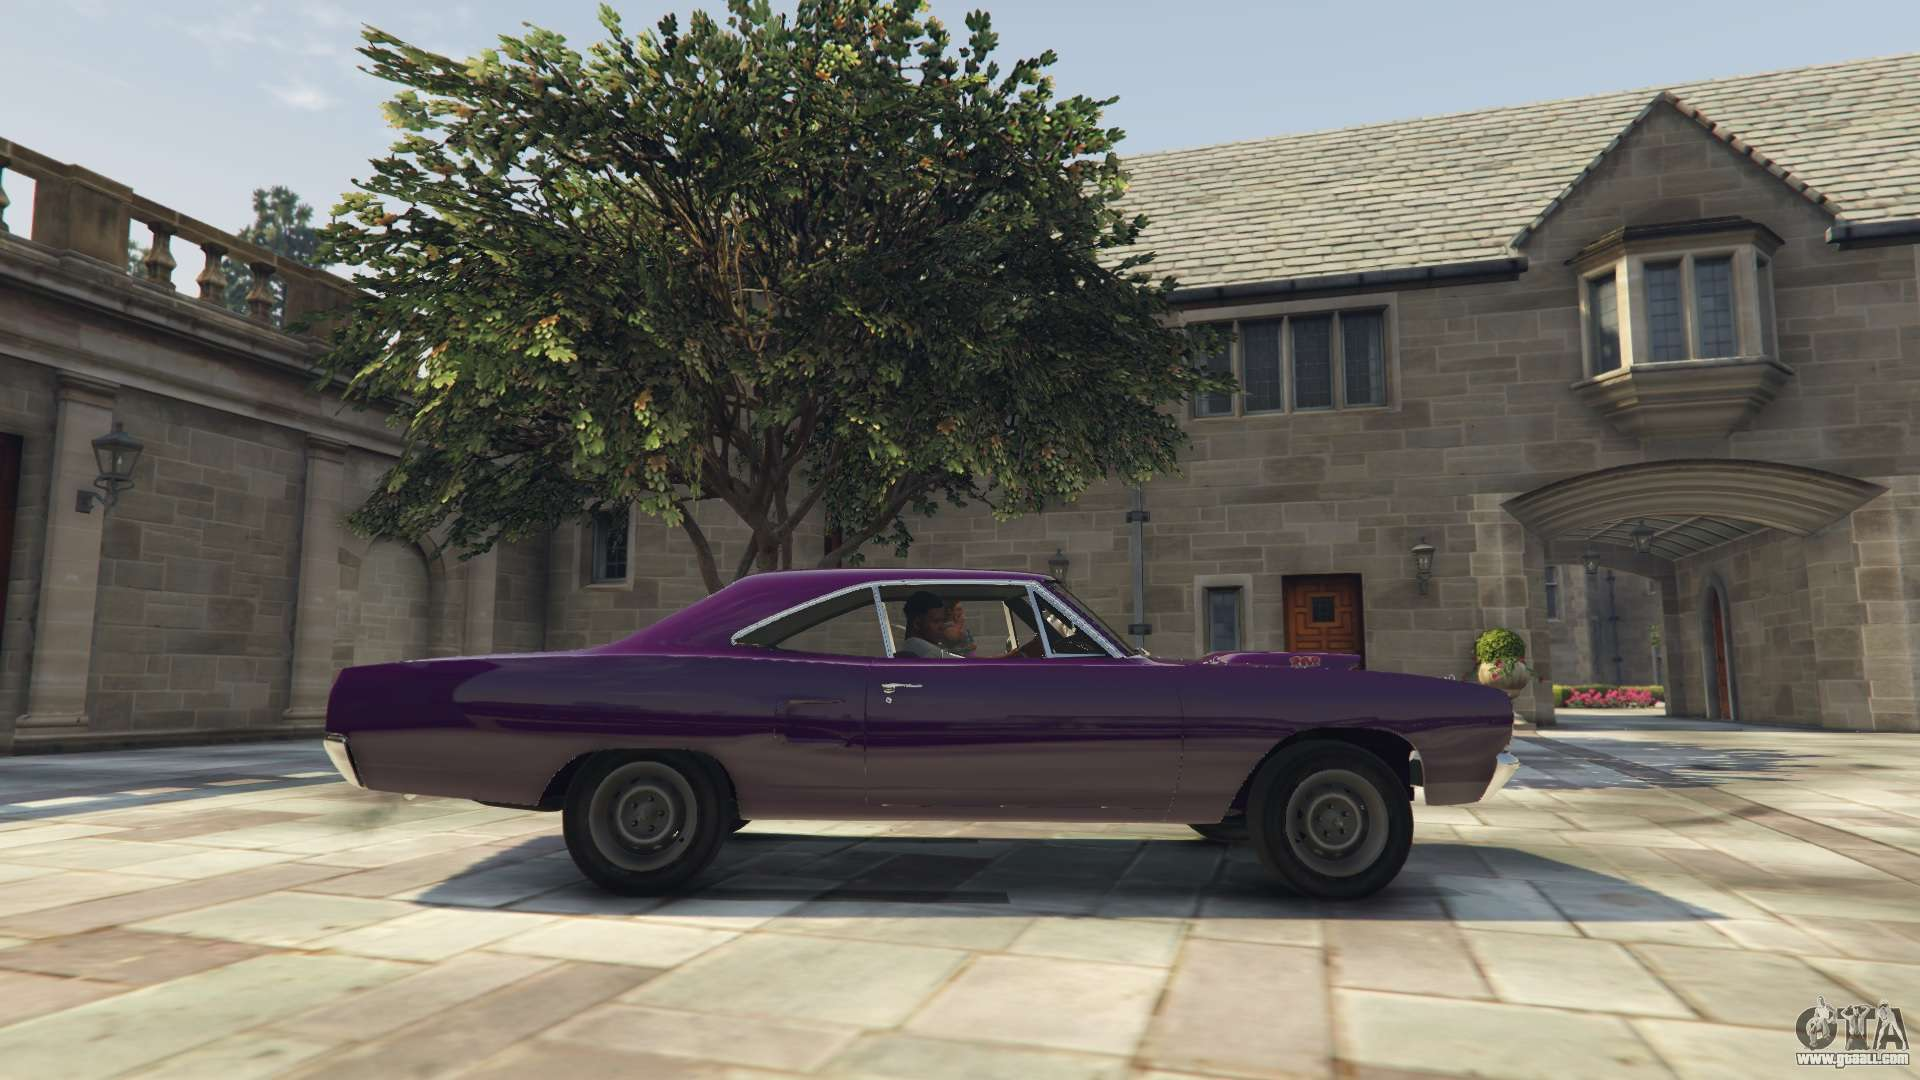 Gta 5 plymouth road runner 1970 left side view